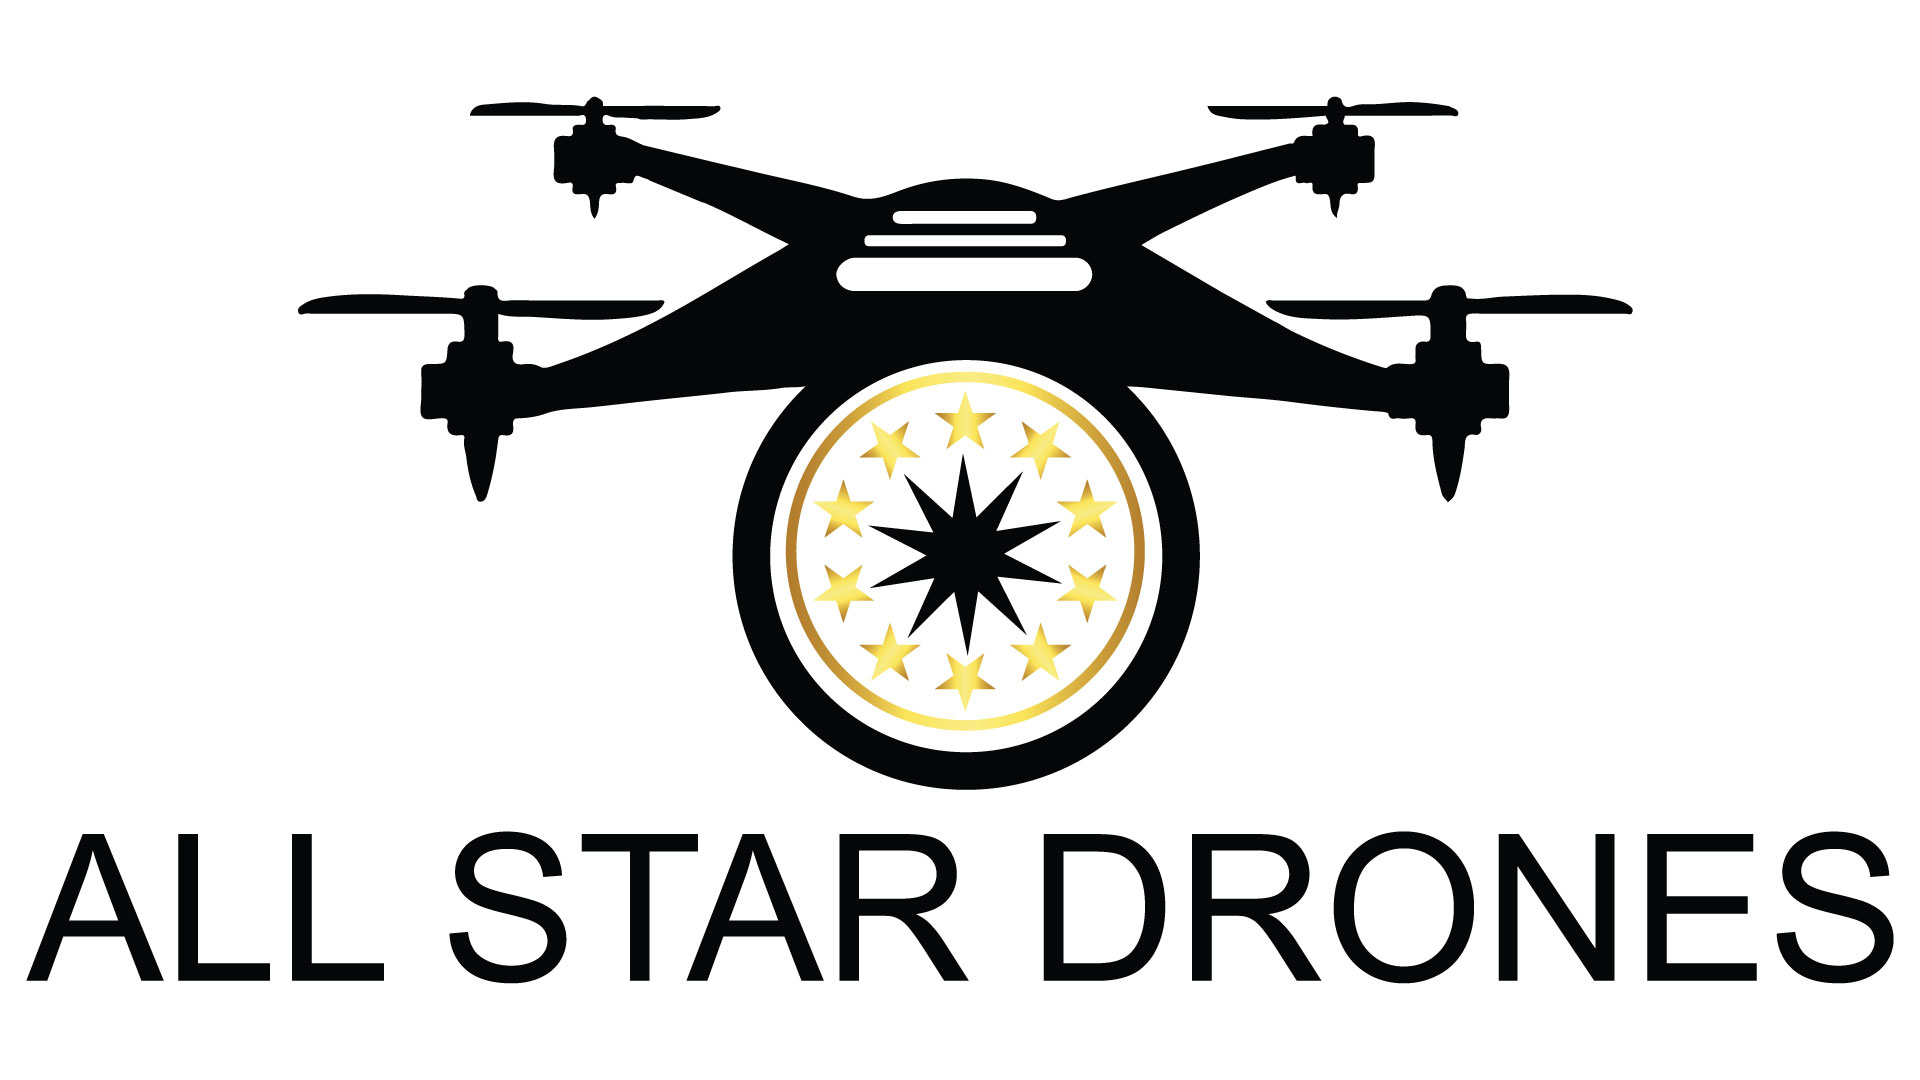 All Star Drones